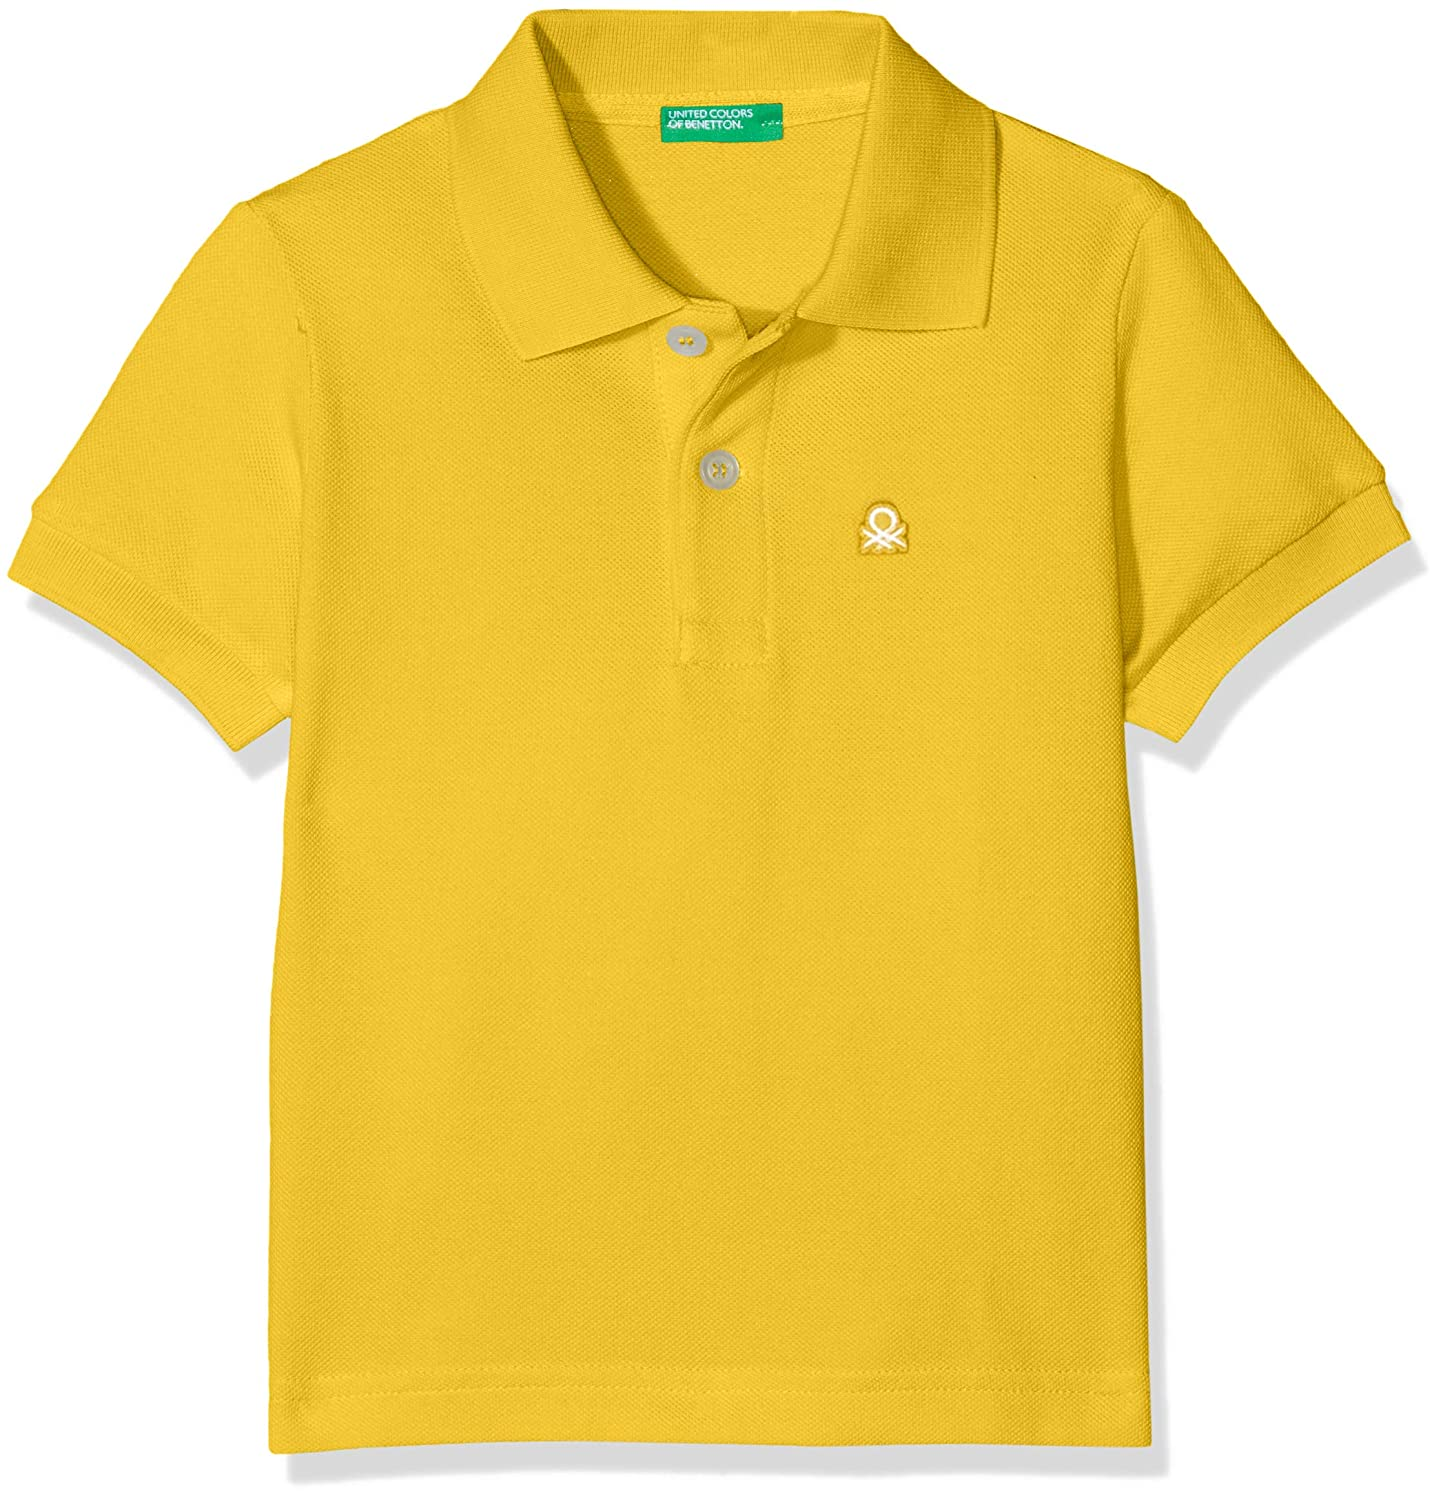 United Colors of Benetton H/S Polo Shirt, Bambino 3089C3303